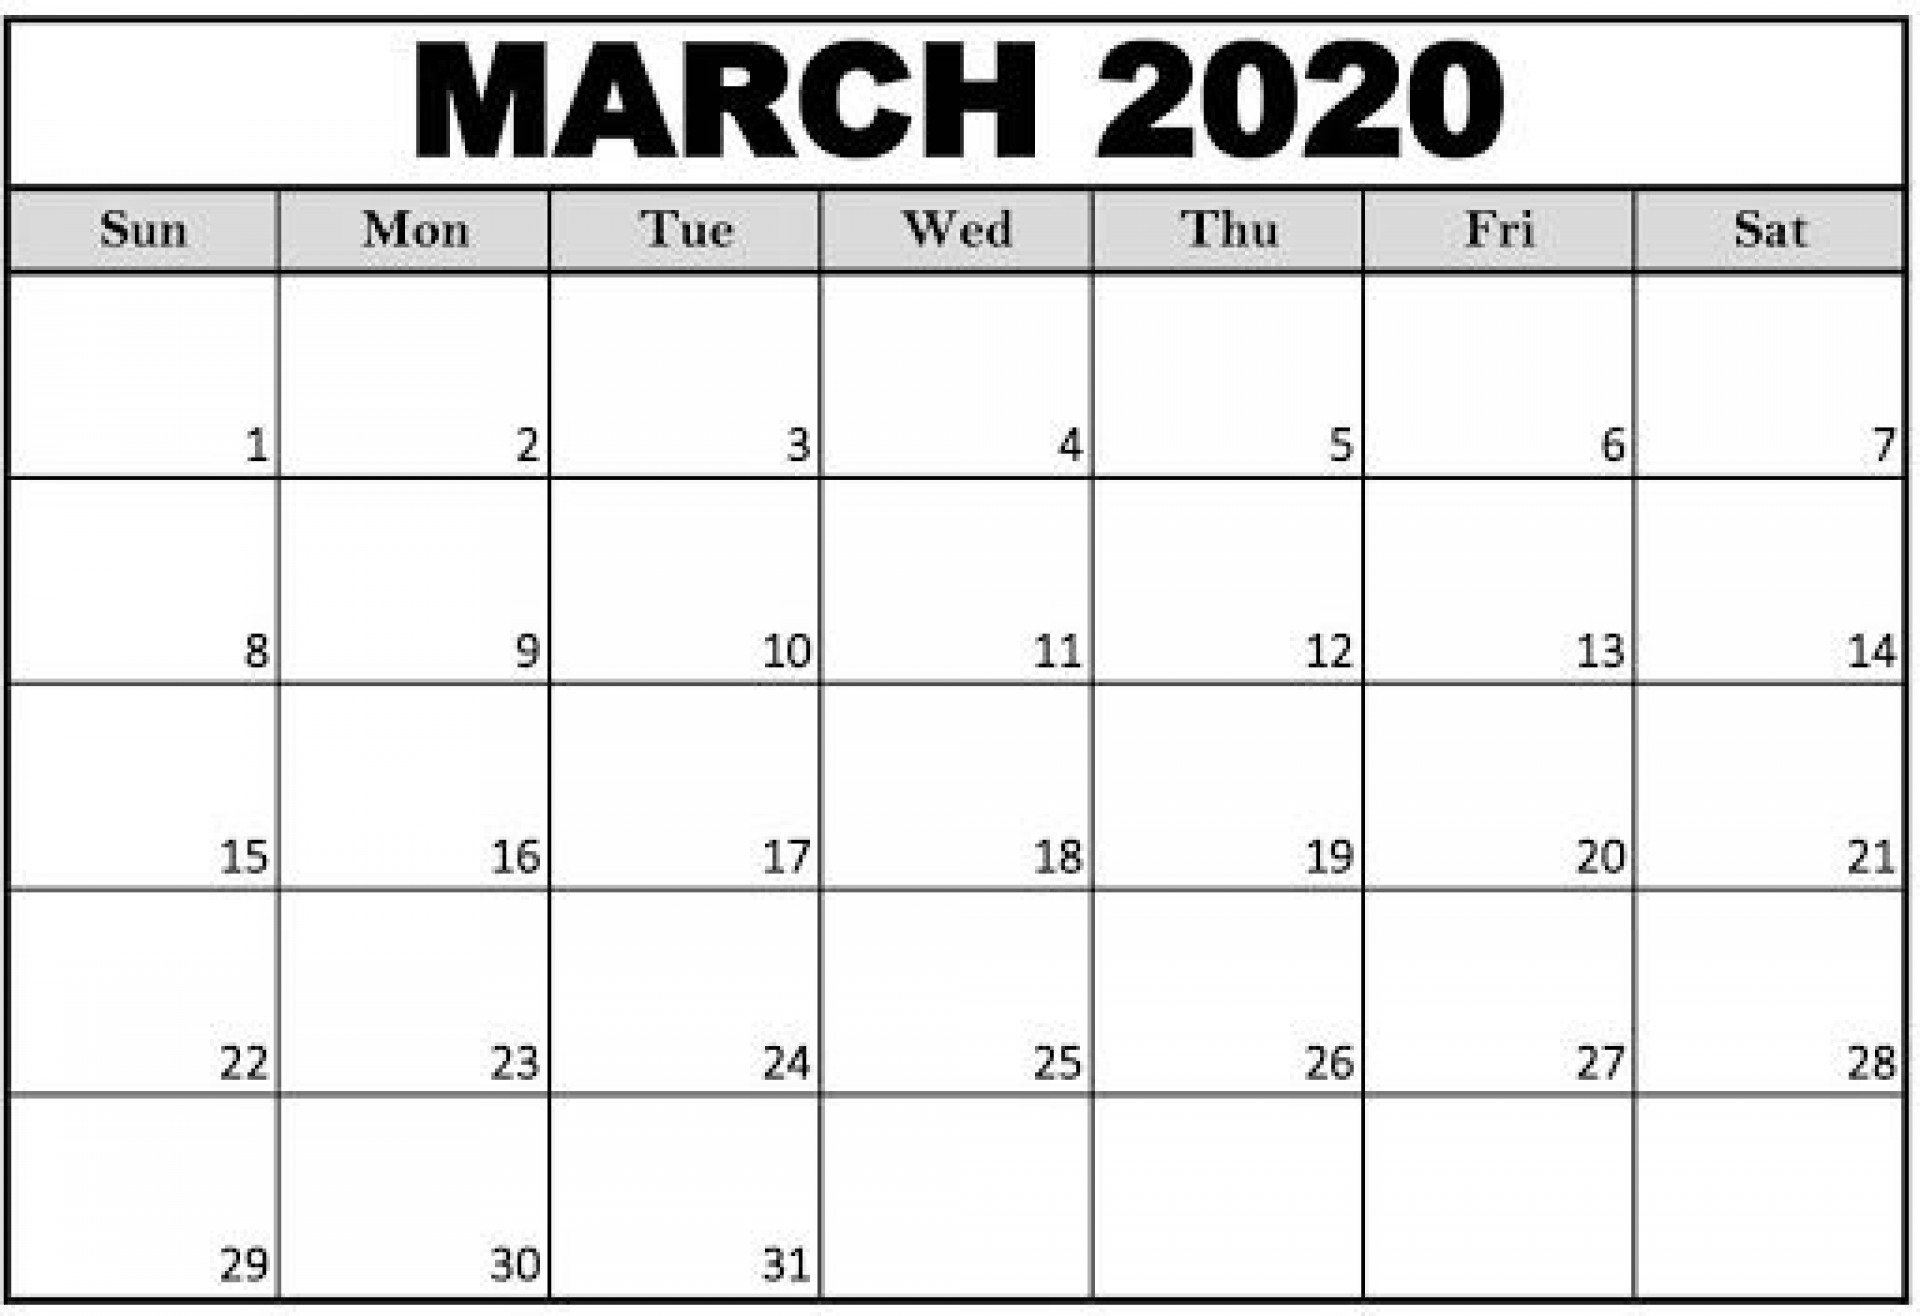 009 Archaicawful 2020 Calendar Template Excel Example  Microsoft Editable In Format Free Download1920